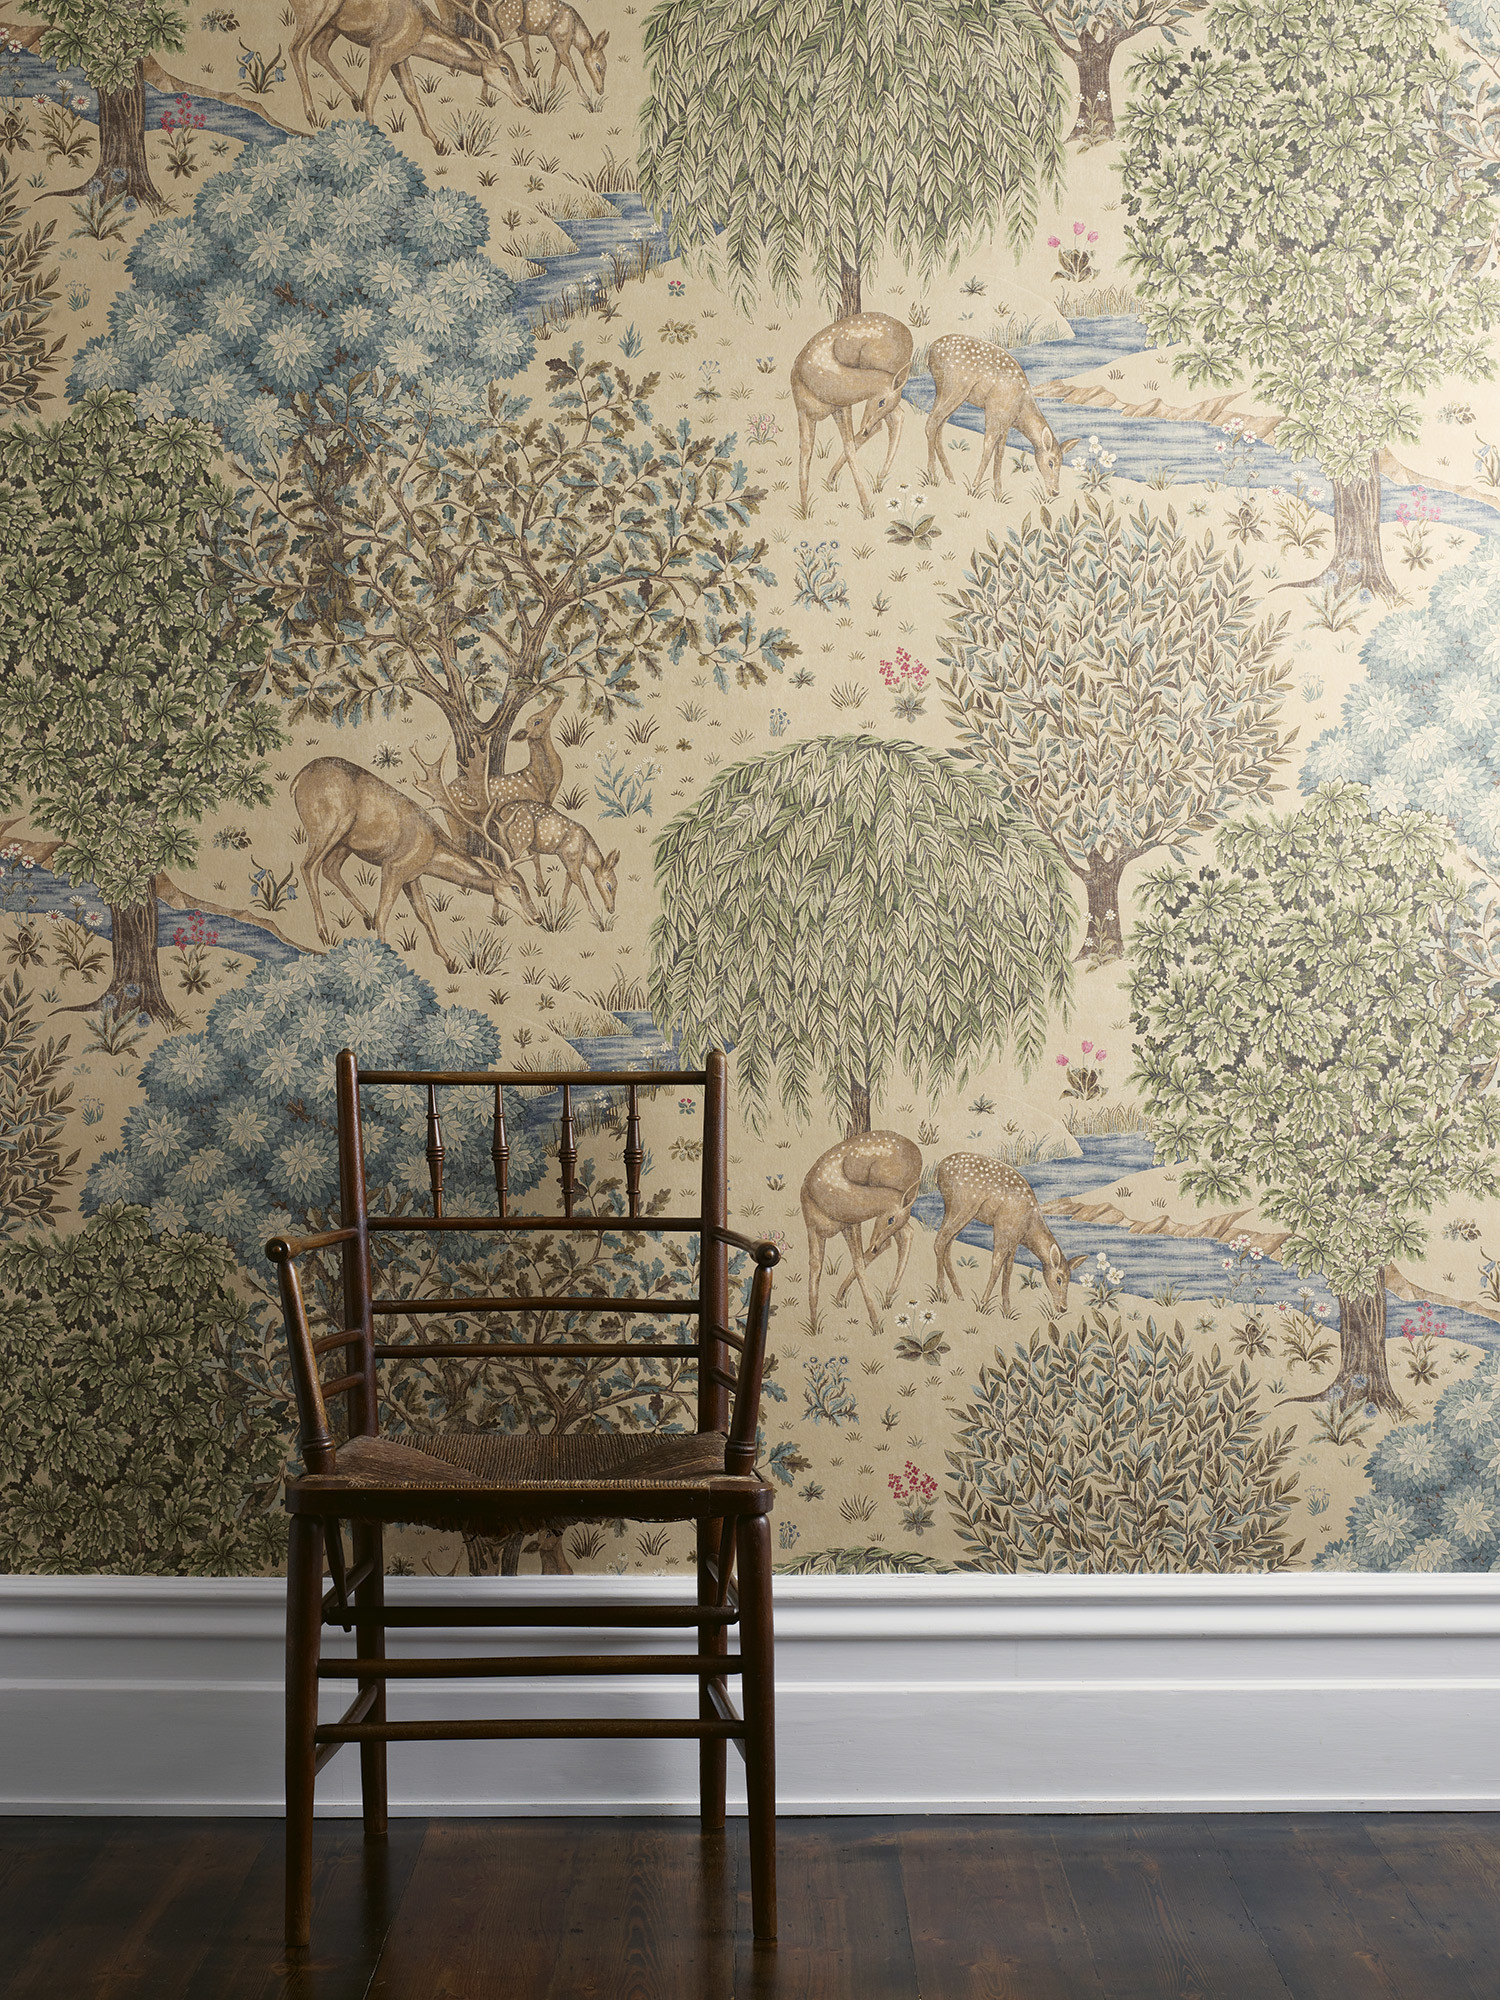 1500x2000 ... Inspired by The Brook Tapestry by J. Dearle and the Holy Grail  Tapestries, 'The Brook' has been newly created by Morris & Co and printed  onto wallpaper.